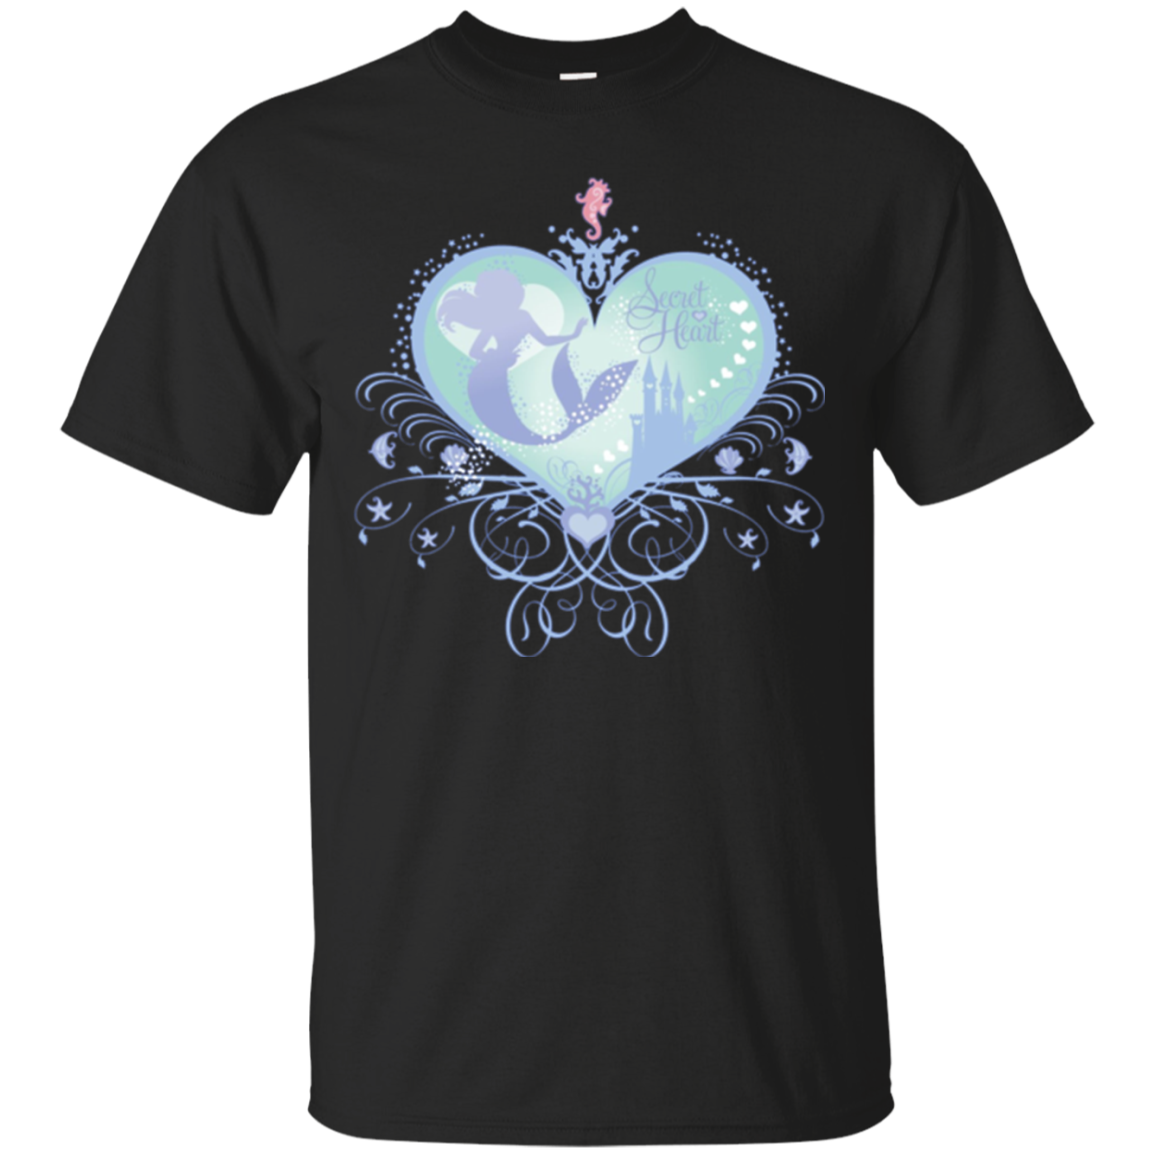 Lovely Mermaid Silhouette Secret Heart Pink Seahorse T-Shirt